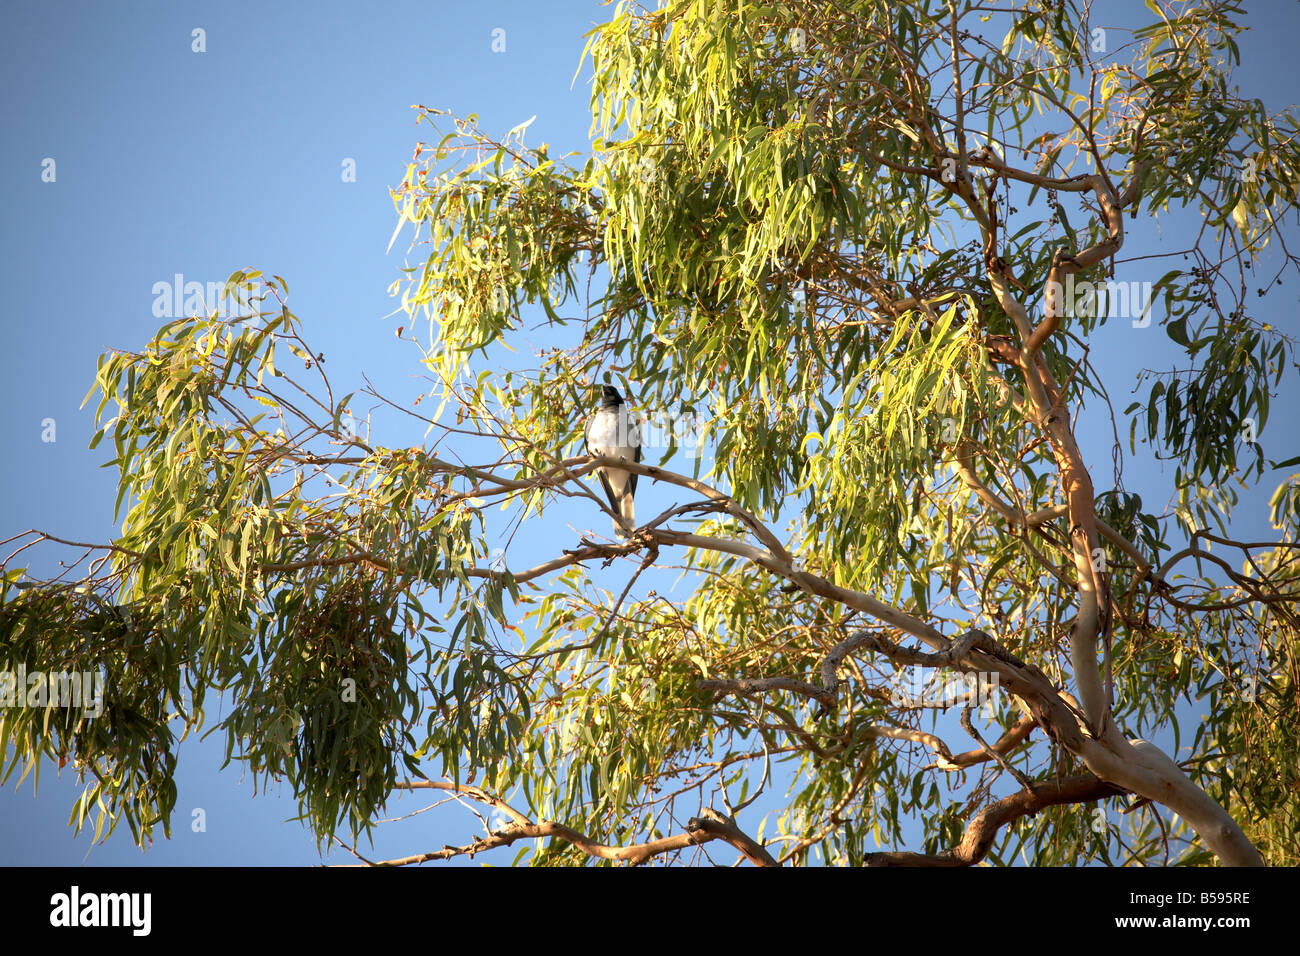 Bird in eucalyptus or gum tree at Amity Point on North Stradbroke Island Queensland QLD Australia - Stock Image